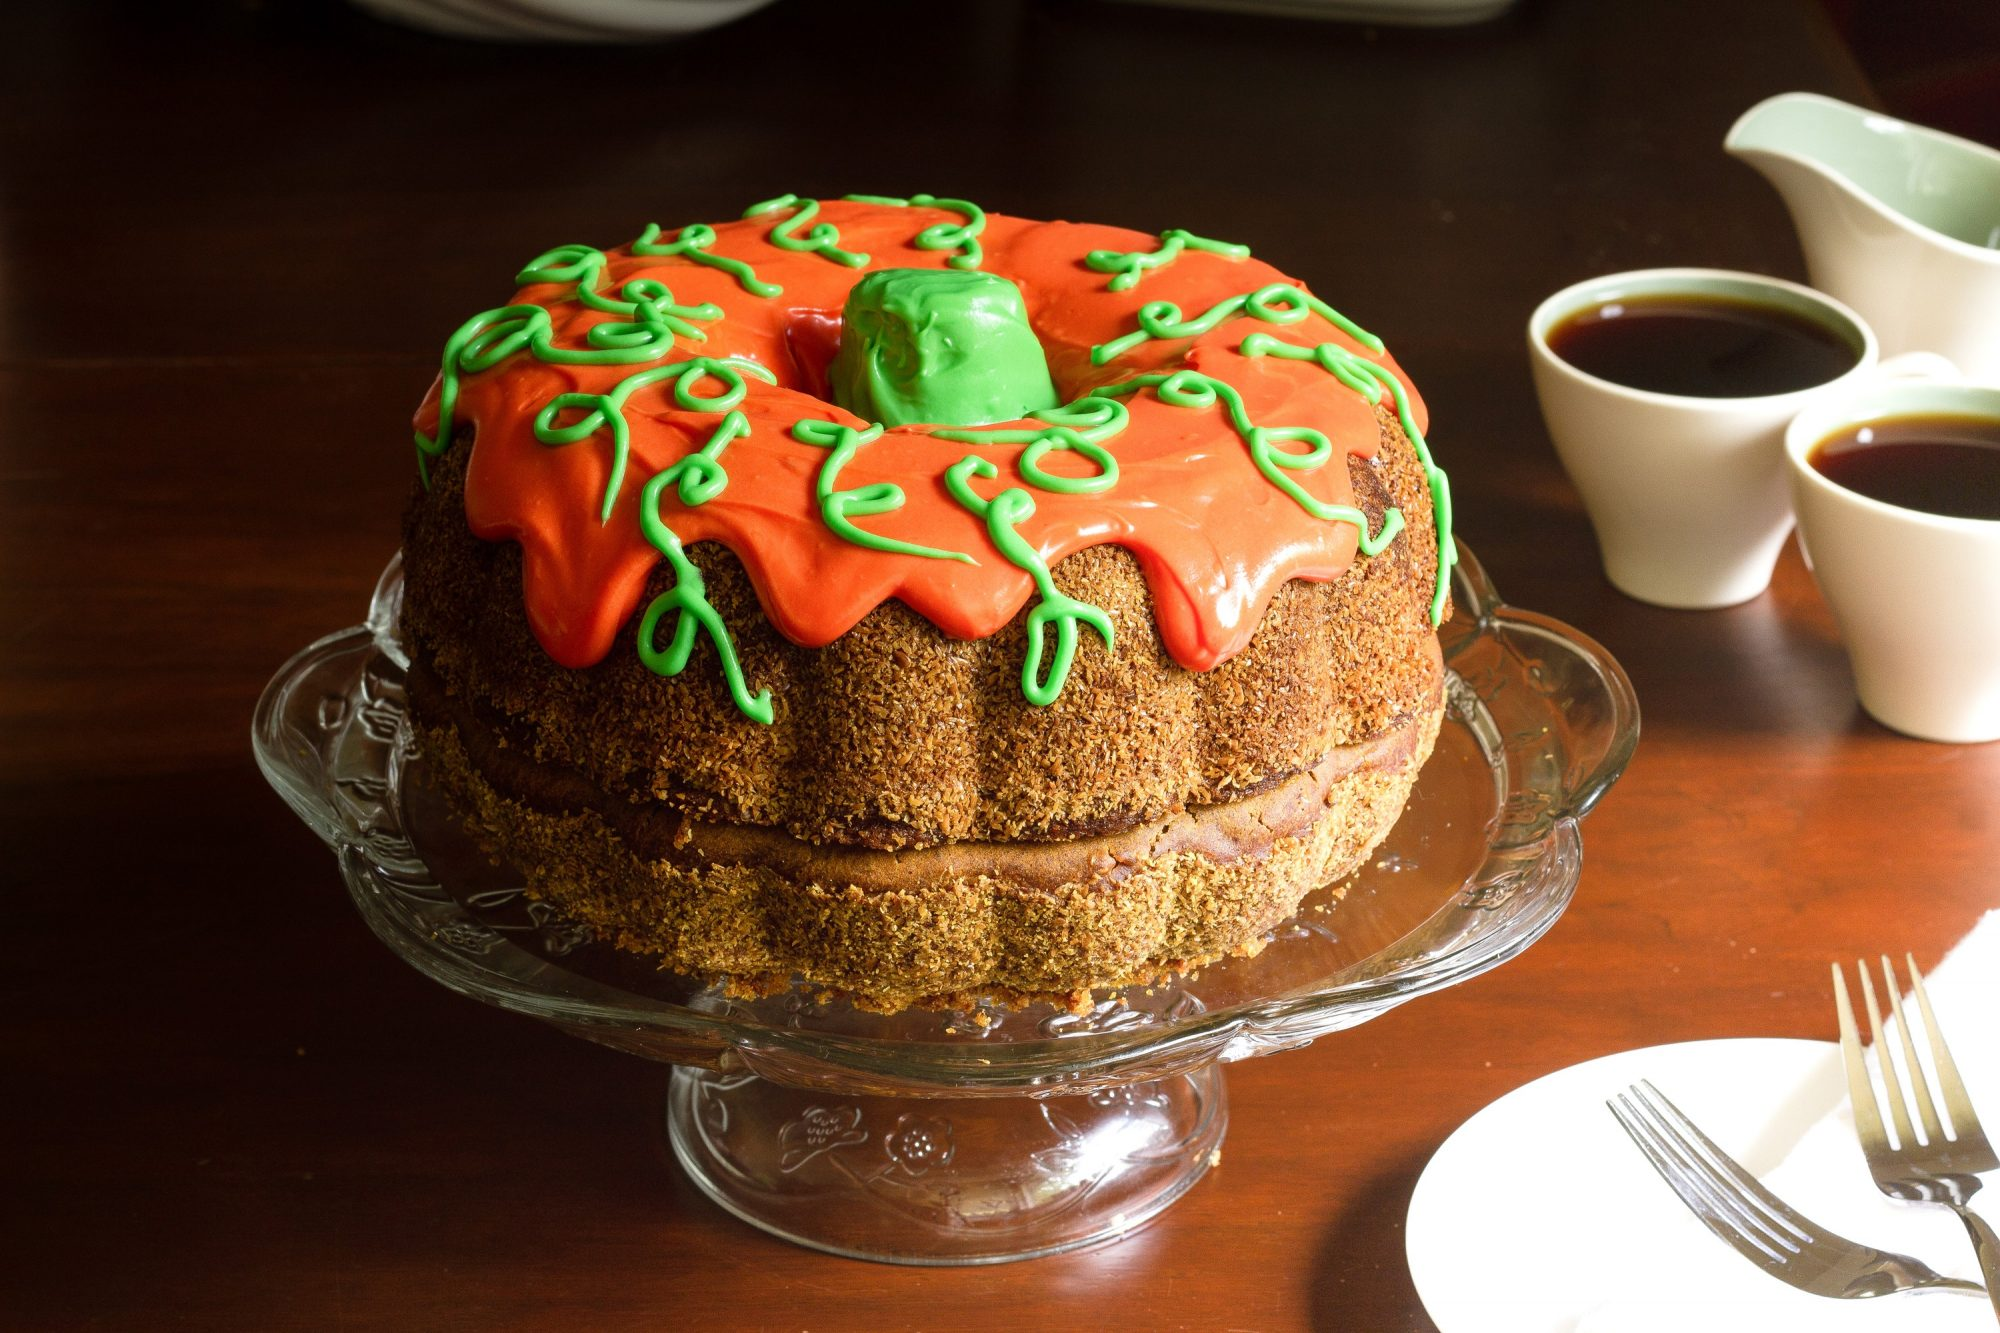 pumpkin bundt cake decorated to look like a pumpkin